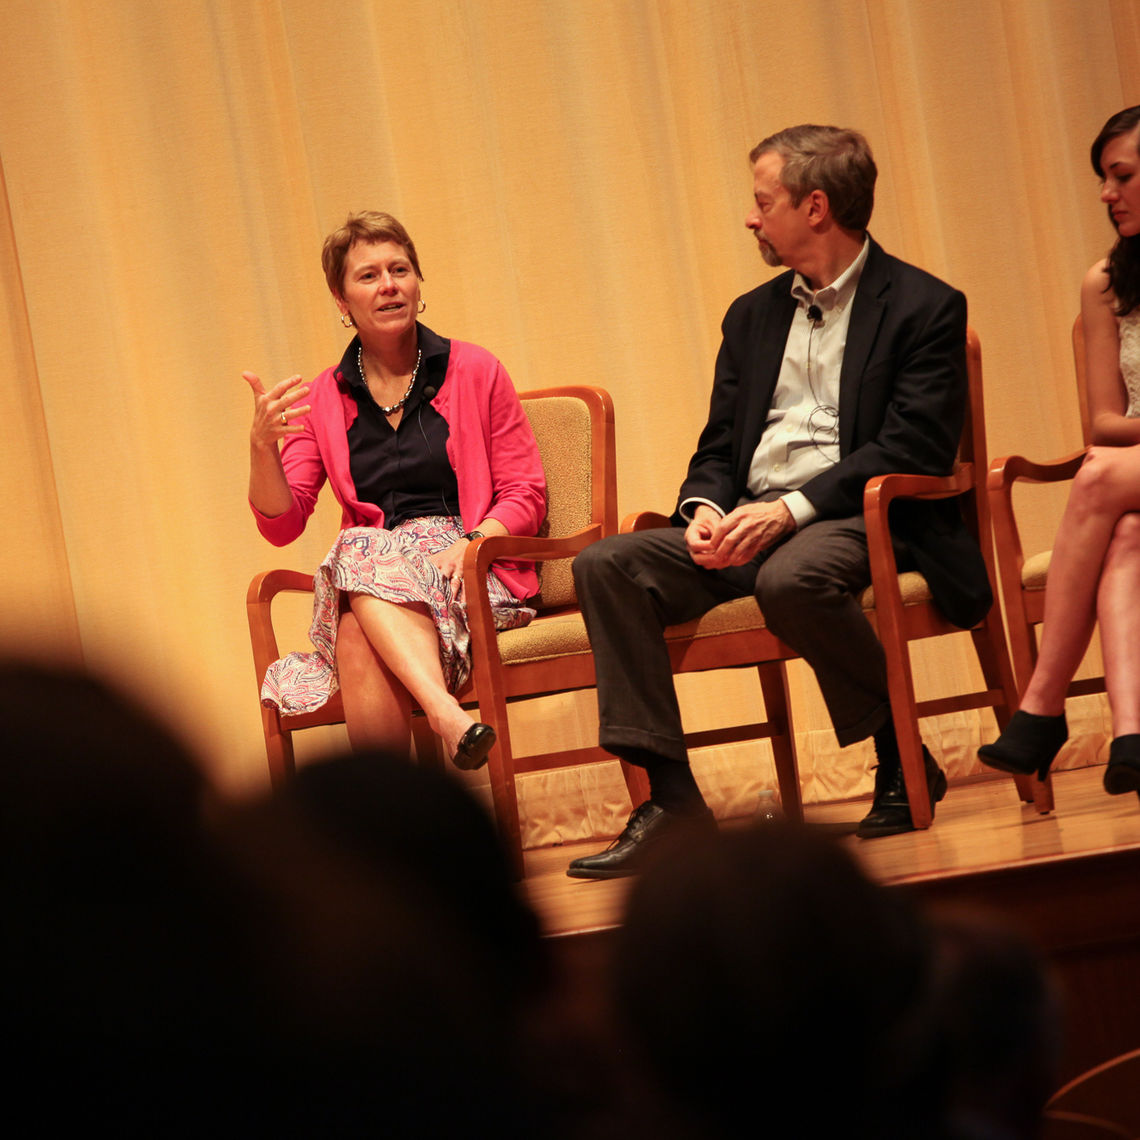 During a panel talk, Dean of the College Margaret Hazlett, Provost and Dean of the Faculty Joel Martin and junior Kelsey Leigh Reber discuss with the F&M community the College's programs and growth. The panel was led by President Daniel R. Porterfield.